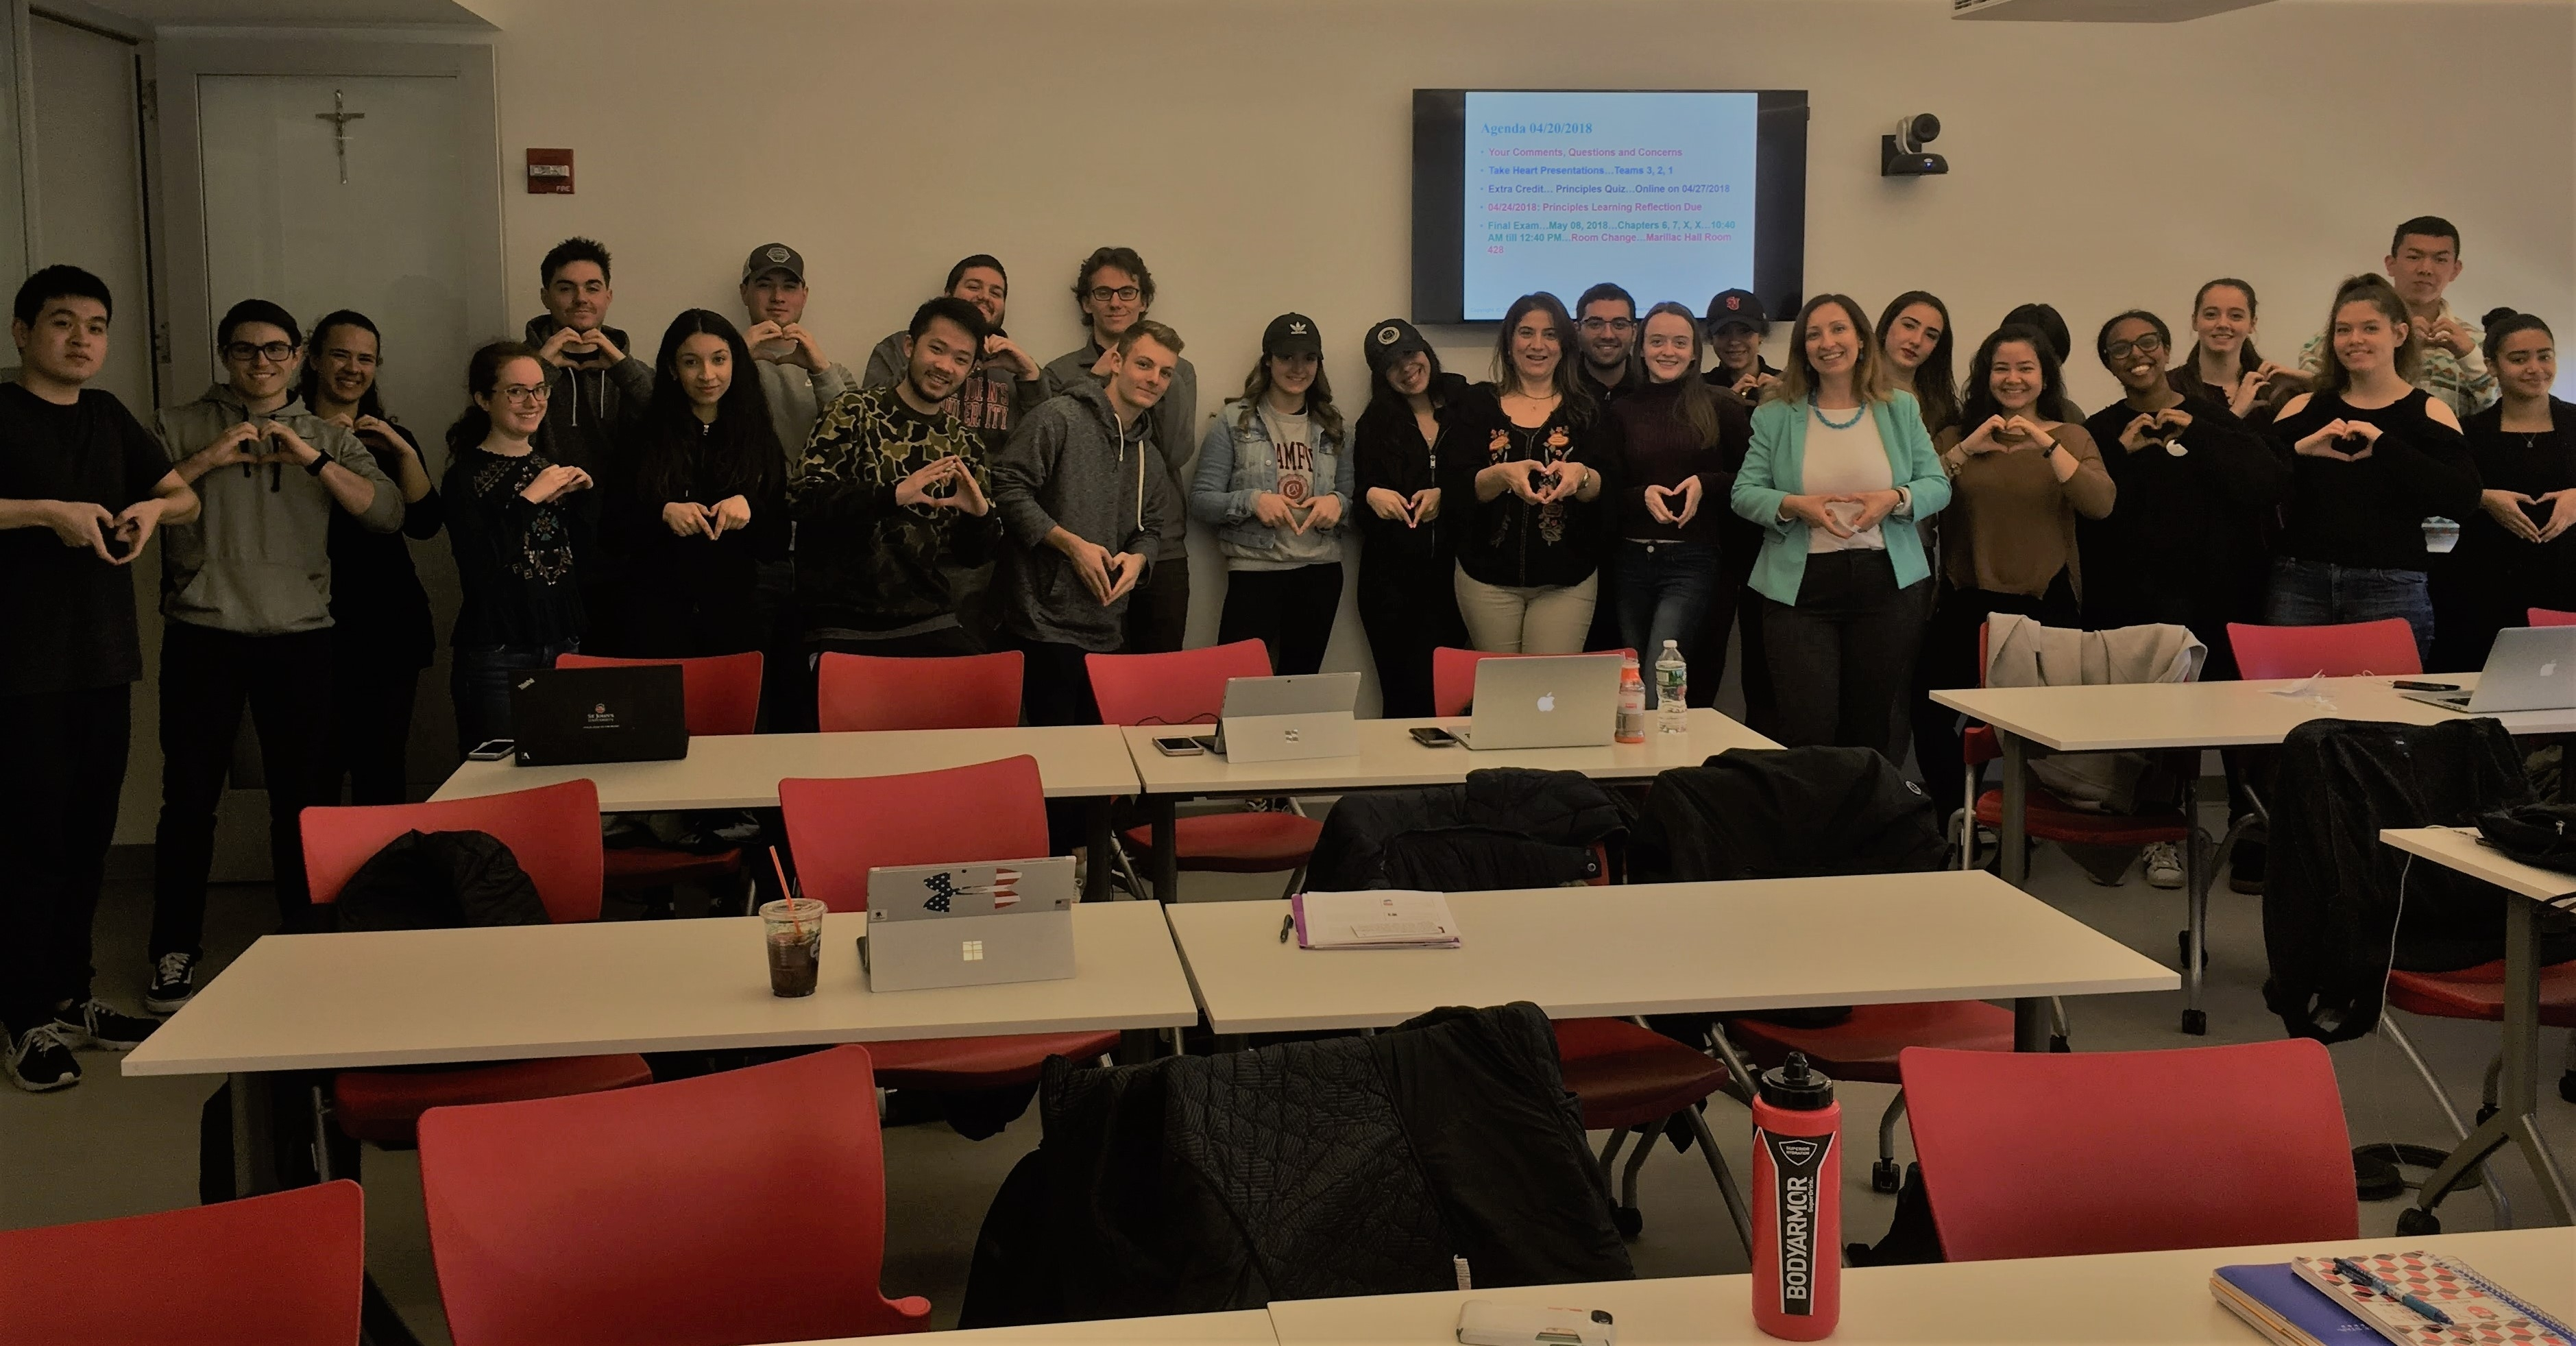 A group photo of students in Prof. Maggiore's class posing with a heart symbol made with their hands, together with Soha Sidhom from Mission Take Heart and Anna Zak from AS-L.